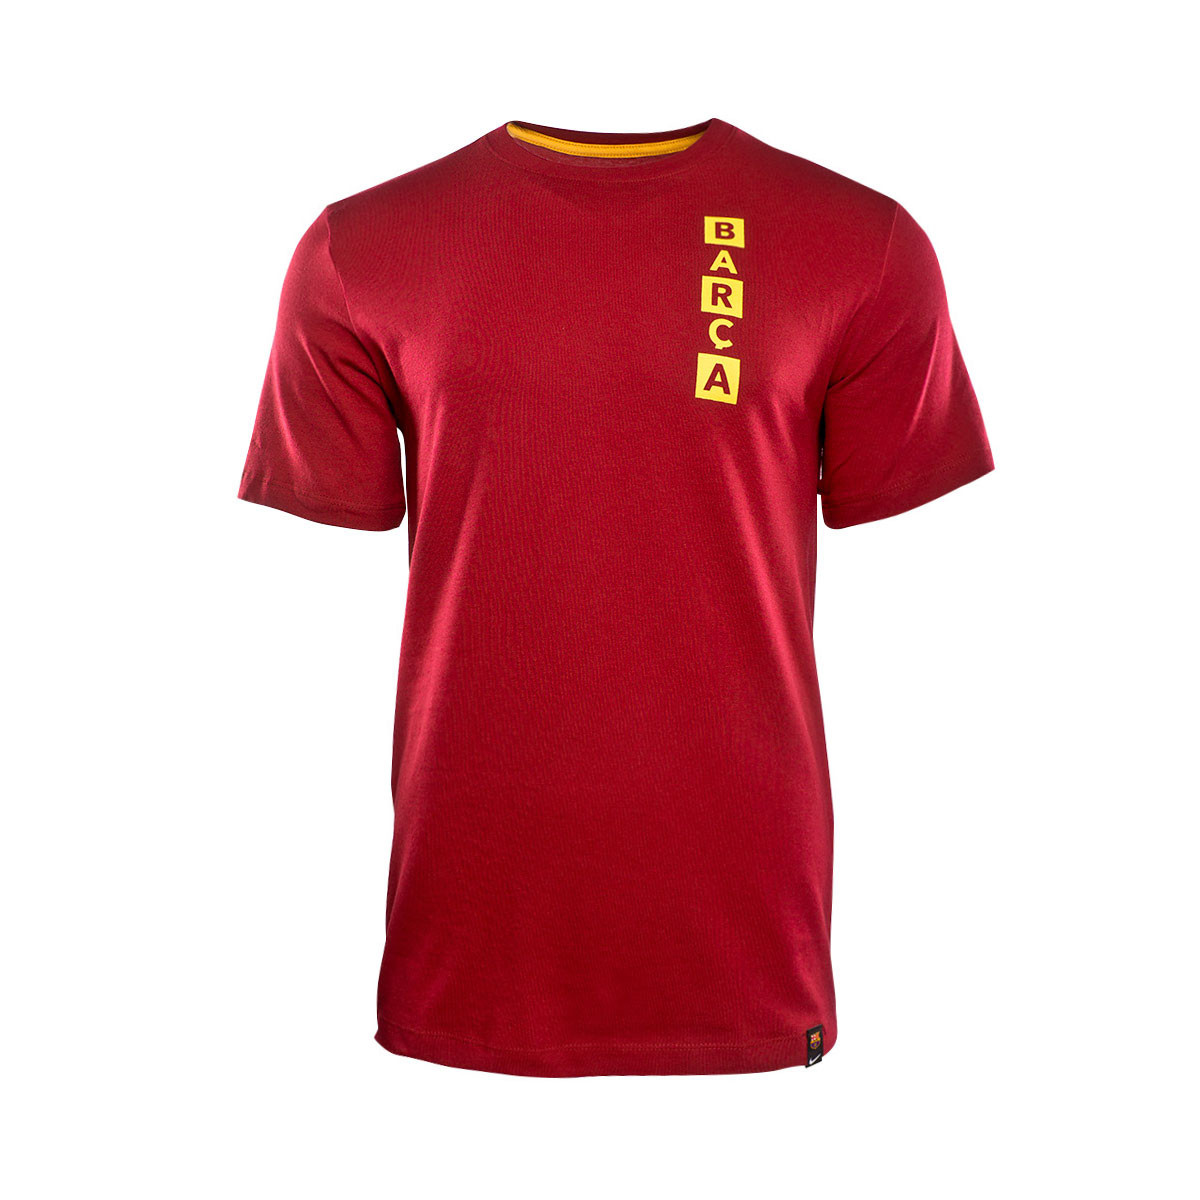 jersey nike fc barcelona kit story tell 2018 2019 noble red football store futbol emotion football boots